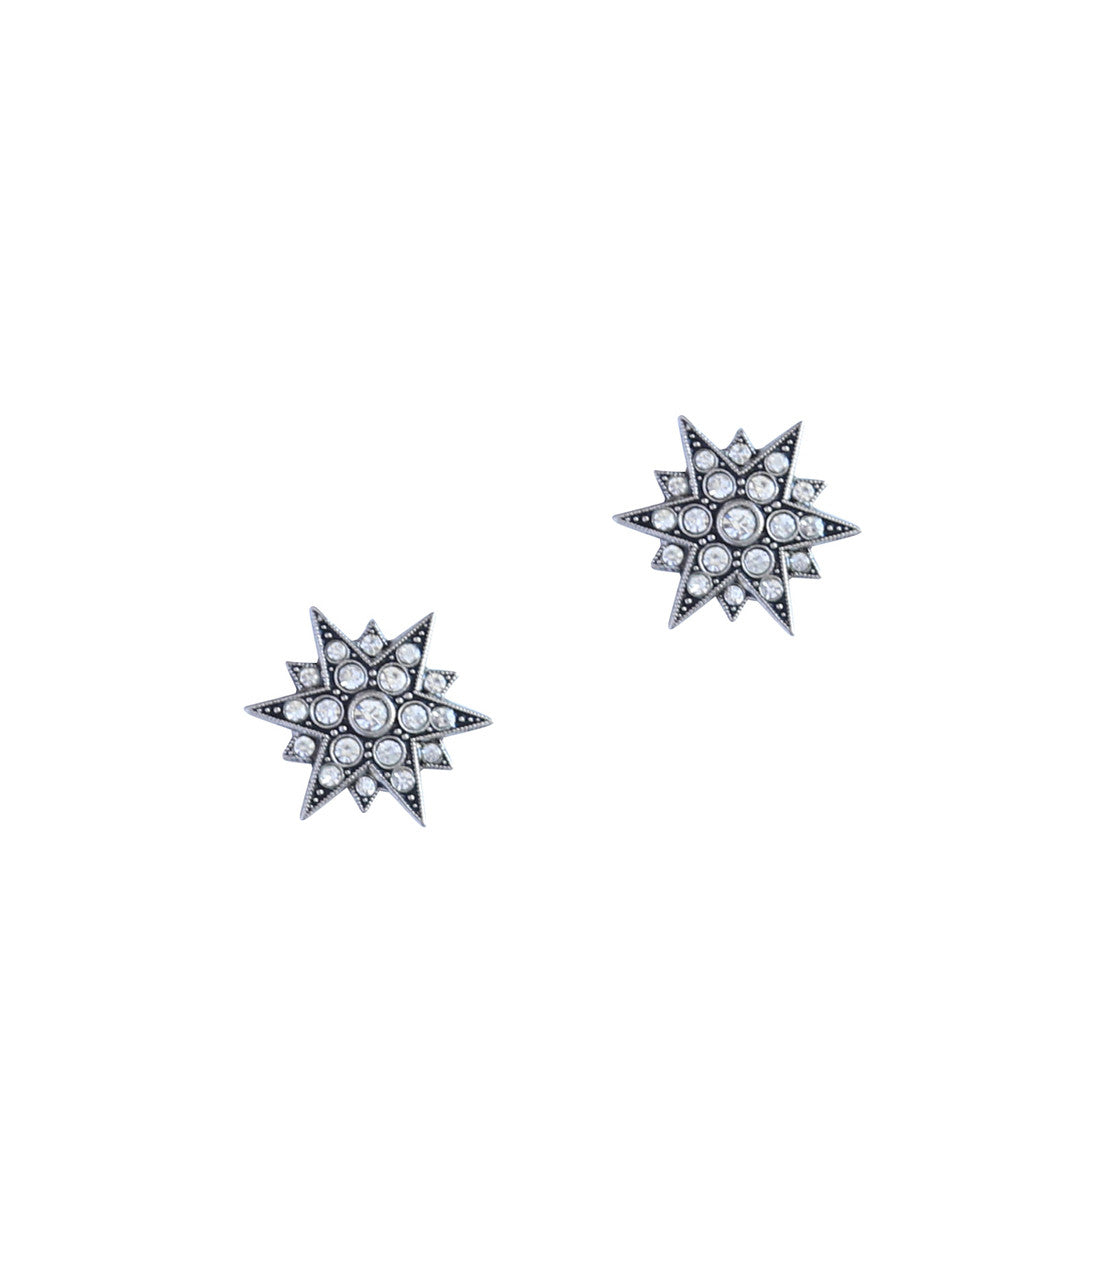 Small Starburst Studs in Silver/Crystal